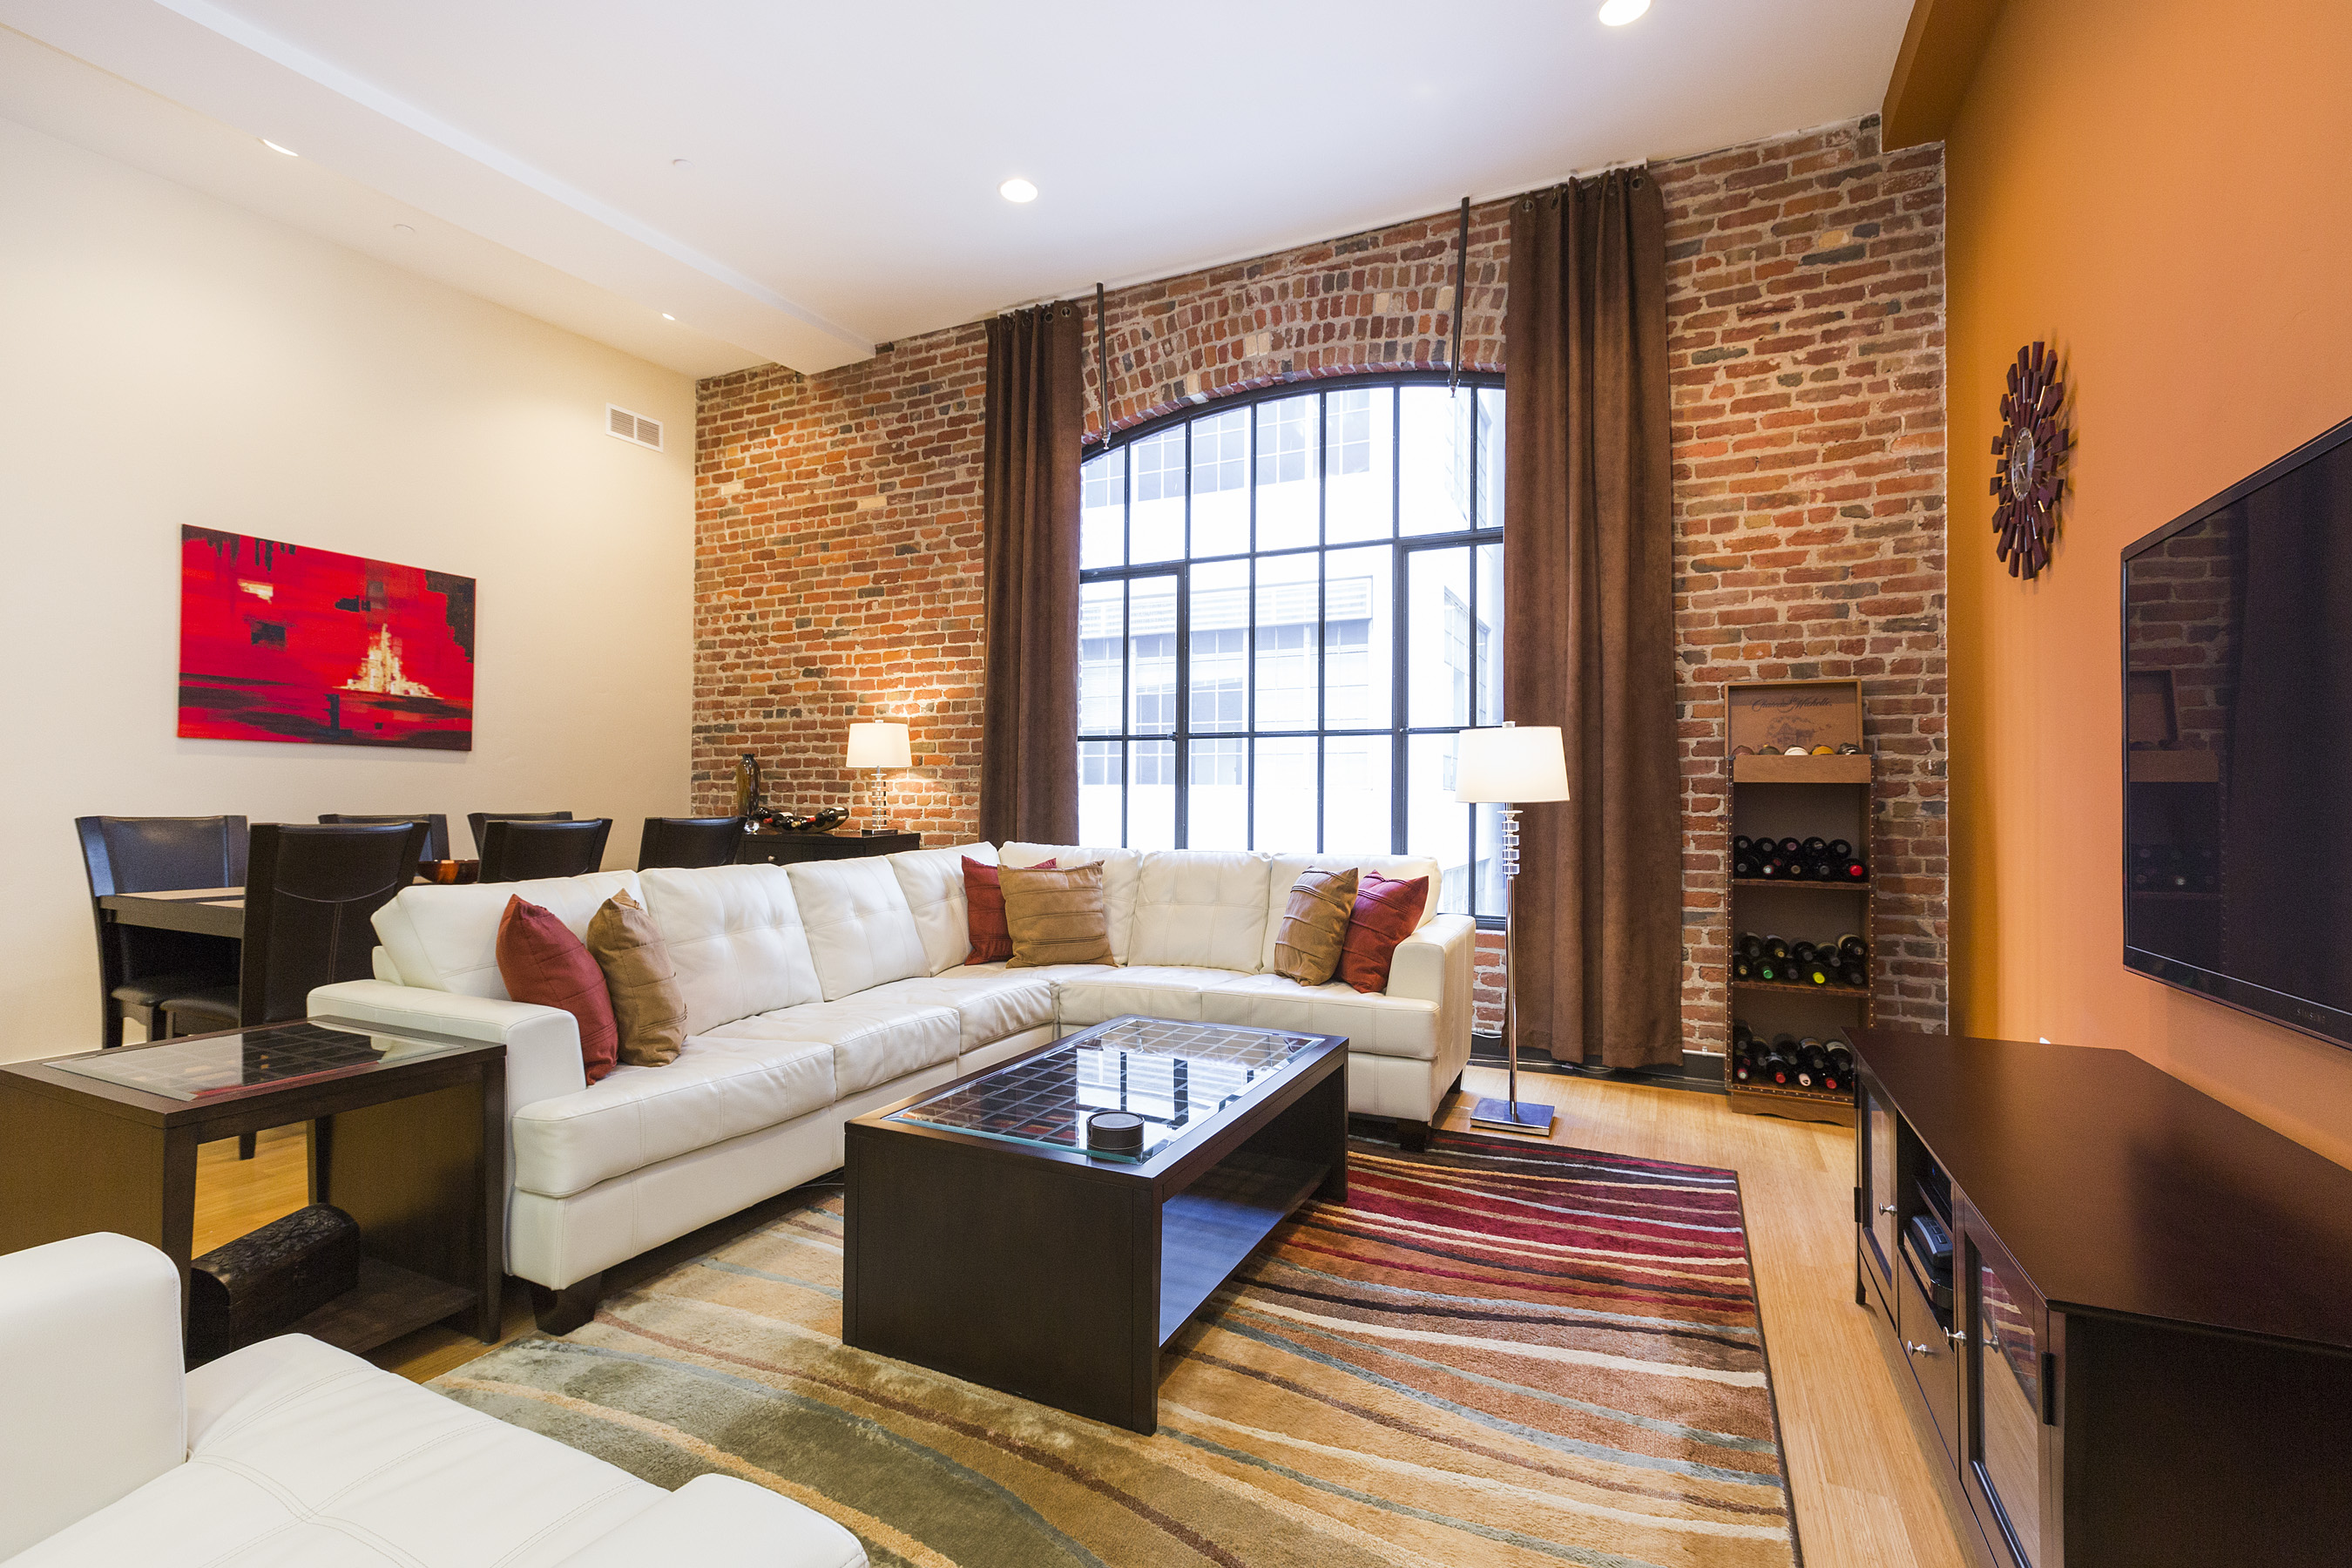 the brick condo furniture. Luxury Downtown Condo With Brick Furniture The